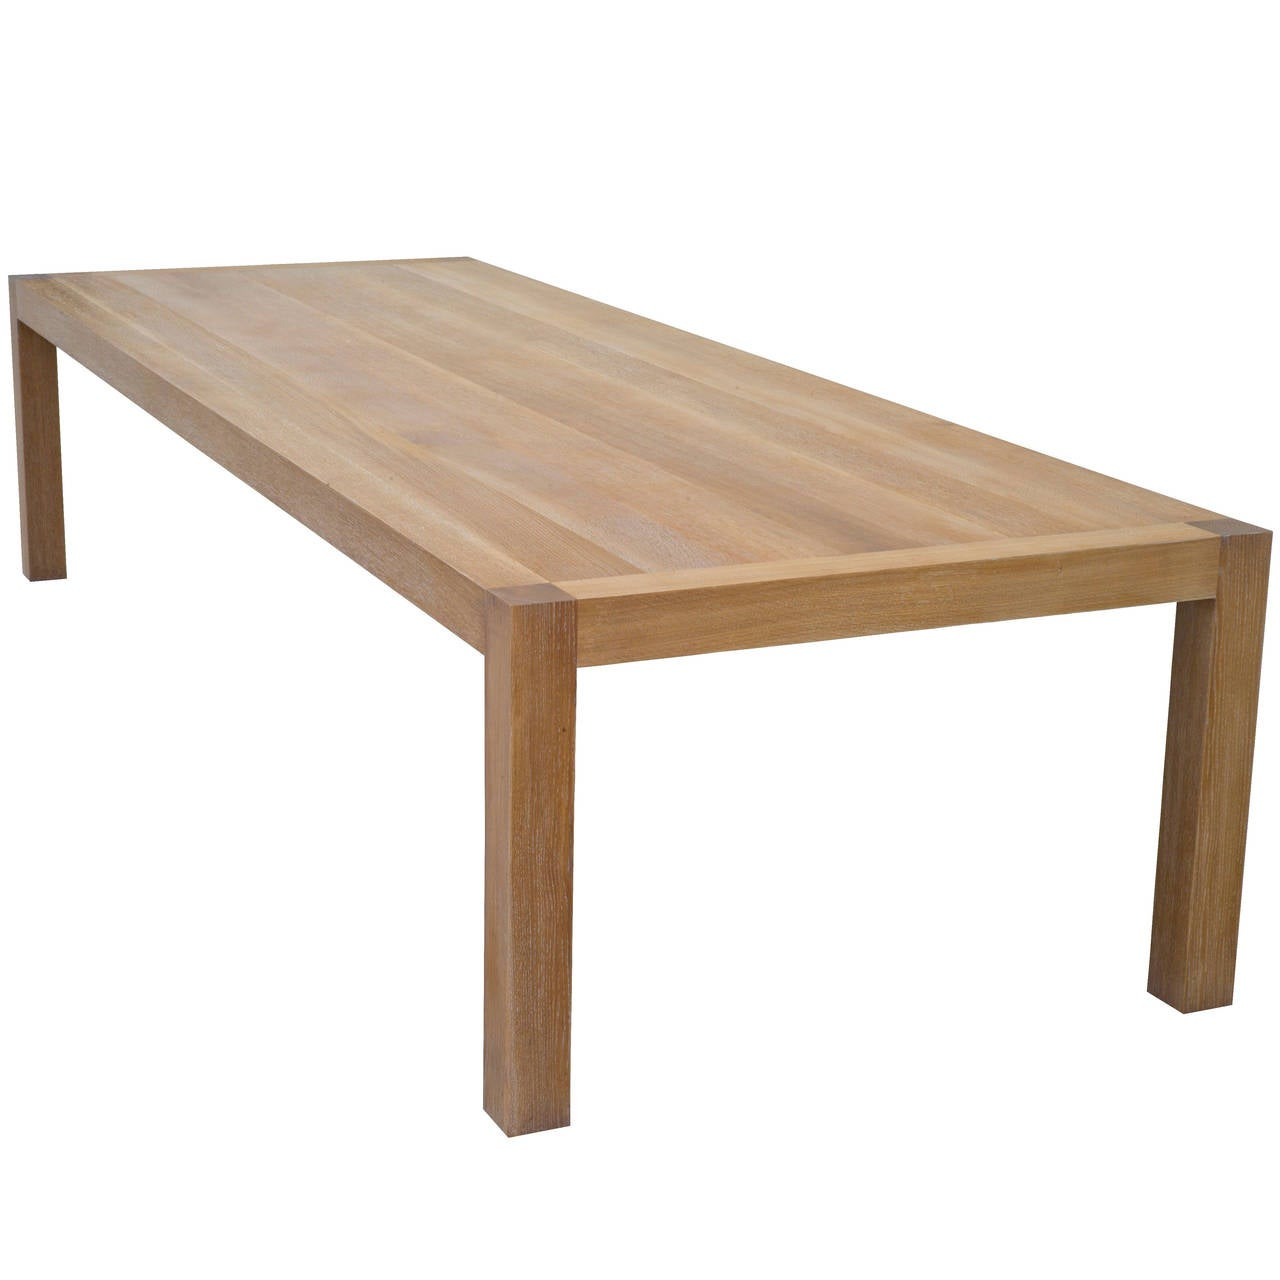 Parsons table with classic limed oak finish for sale at for Oak dining room table